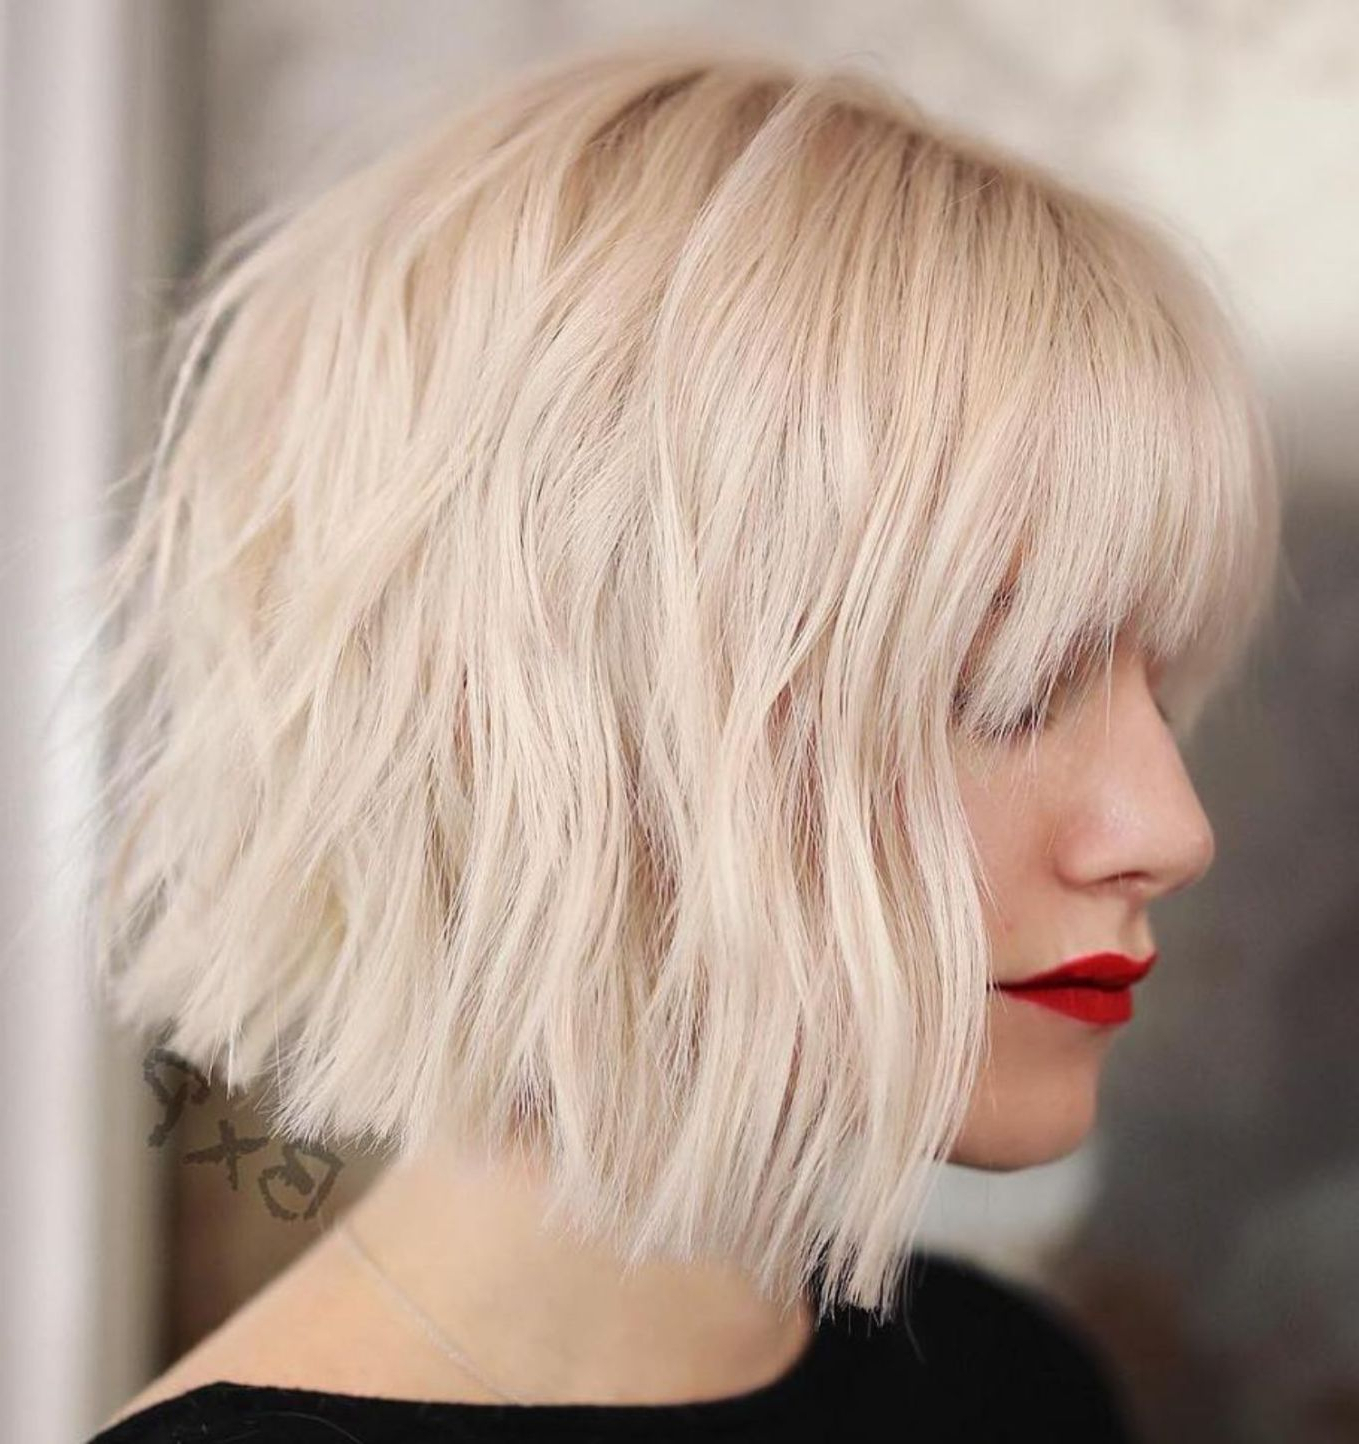 70 Fabulous Choppy Bob Hairstyles | Hair In 2019 | Choppy Inside Shaggy Blonde Bob Hairstyles With Bangs (View 11 of 20)